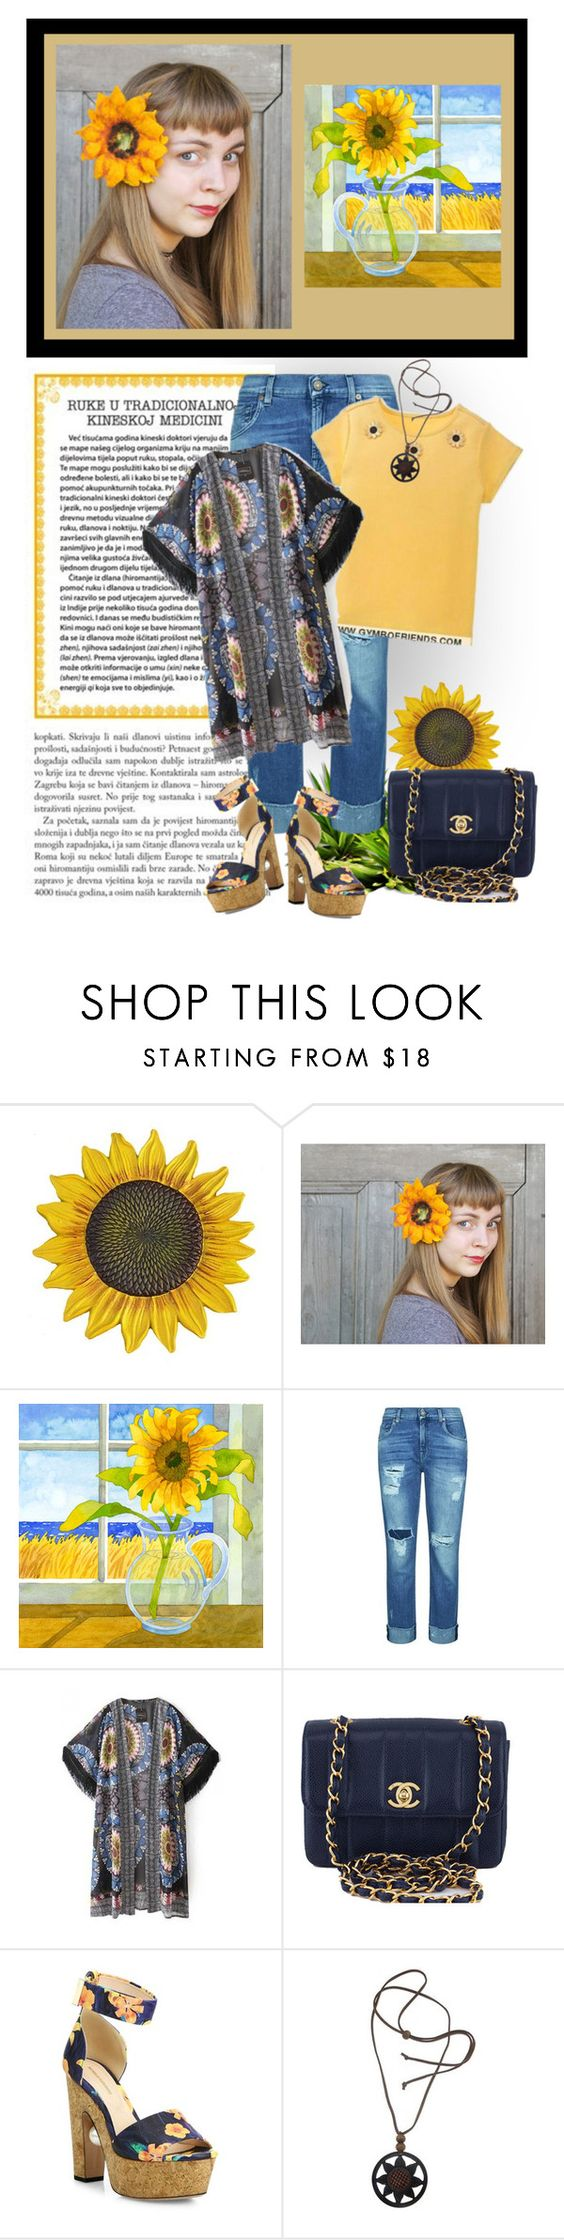 """Sunflowers in your Hair v2"" by jennifertrimble ❤ liked on Polyvore featuring 7 For All Mankind, Chanel, Nicholas Kirkwood and NOVICA"